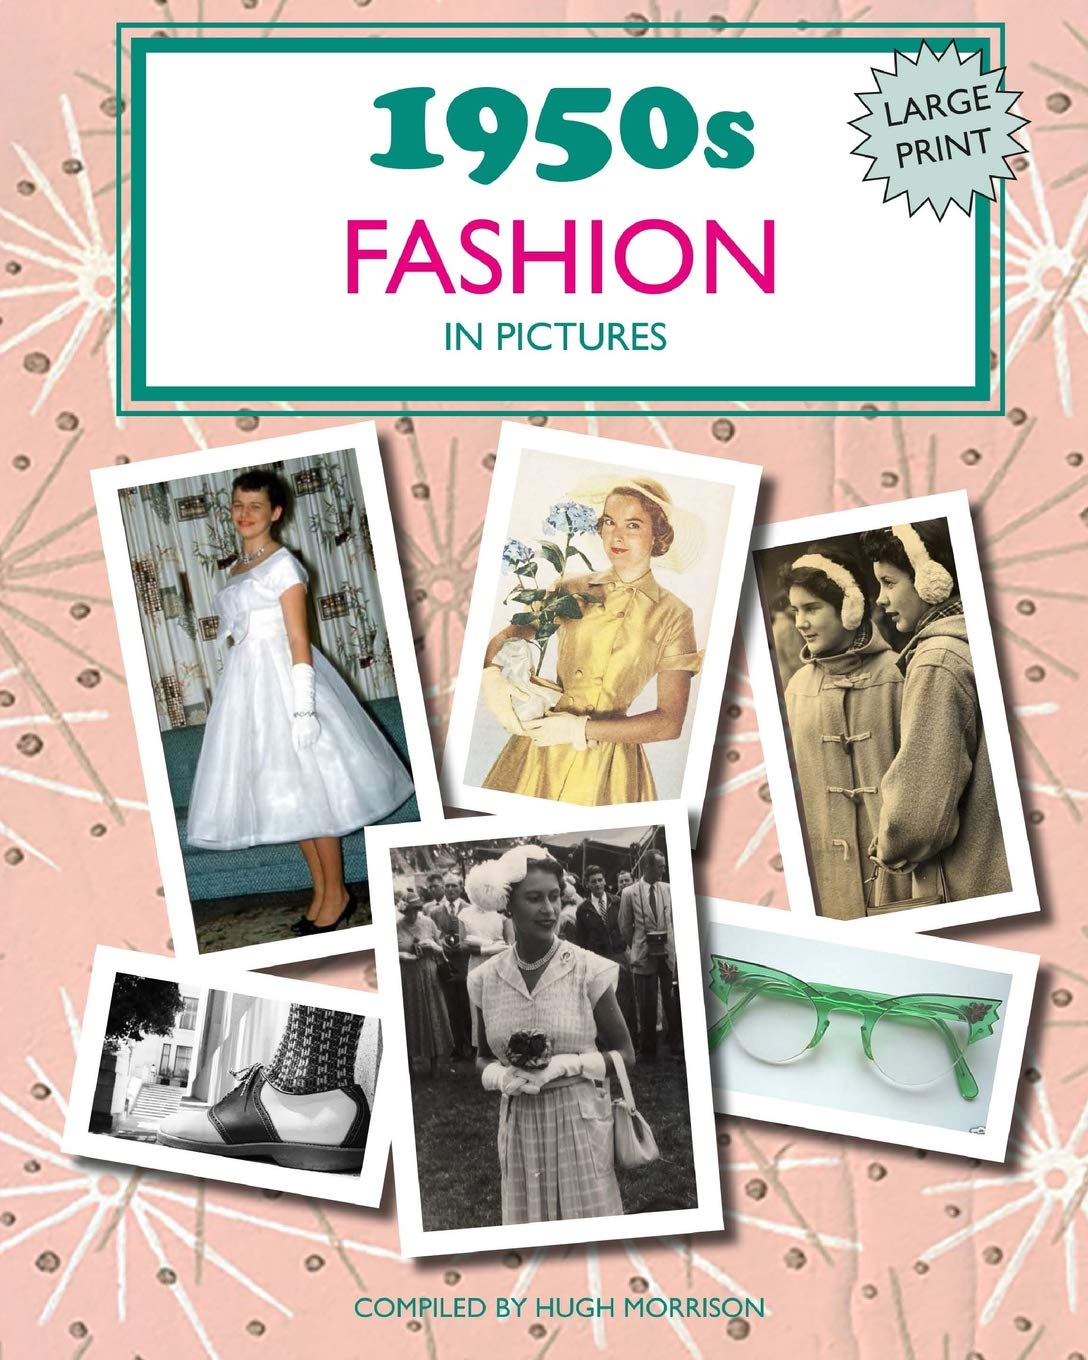 Image Of1950s Fashion In Pictures: Large Print Book For Dementia Patients